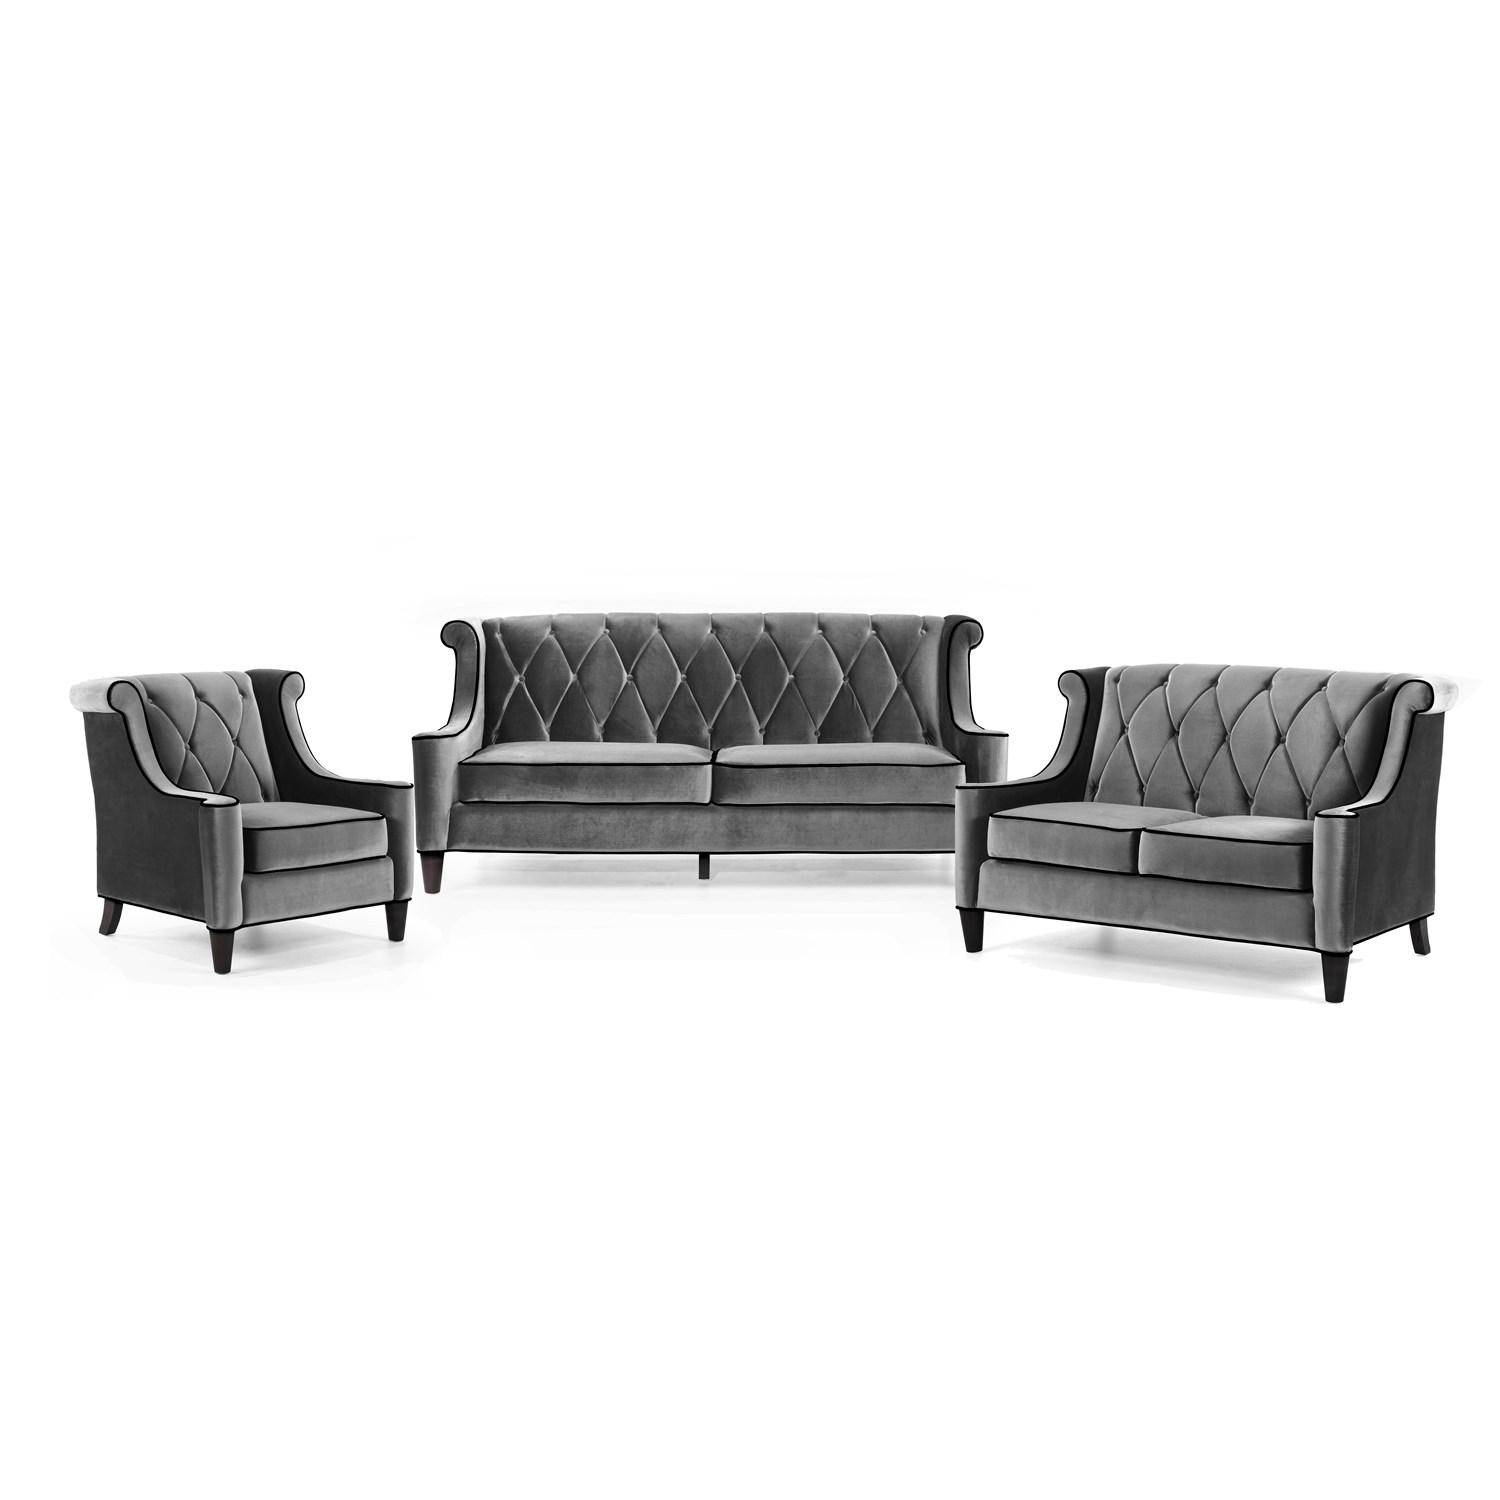 20 Collection Of Barrister Velvet Sofas | Sofa Ideas regarding Barrister Velvet Sofas (Image 3 of 15)